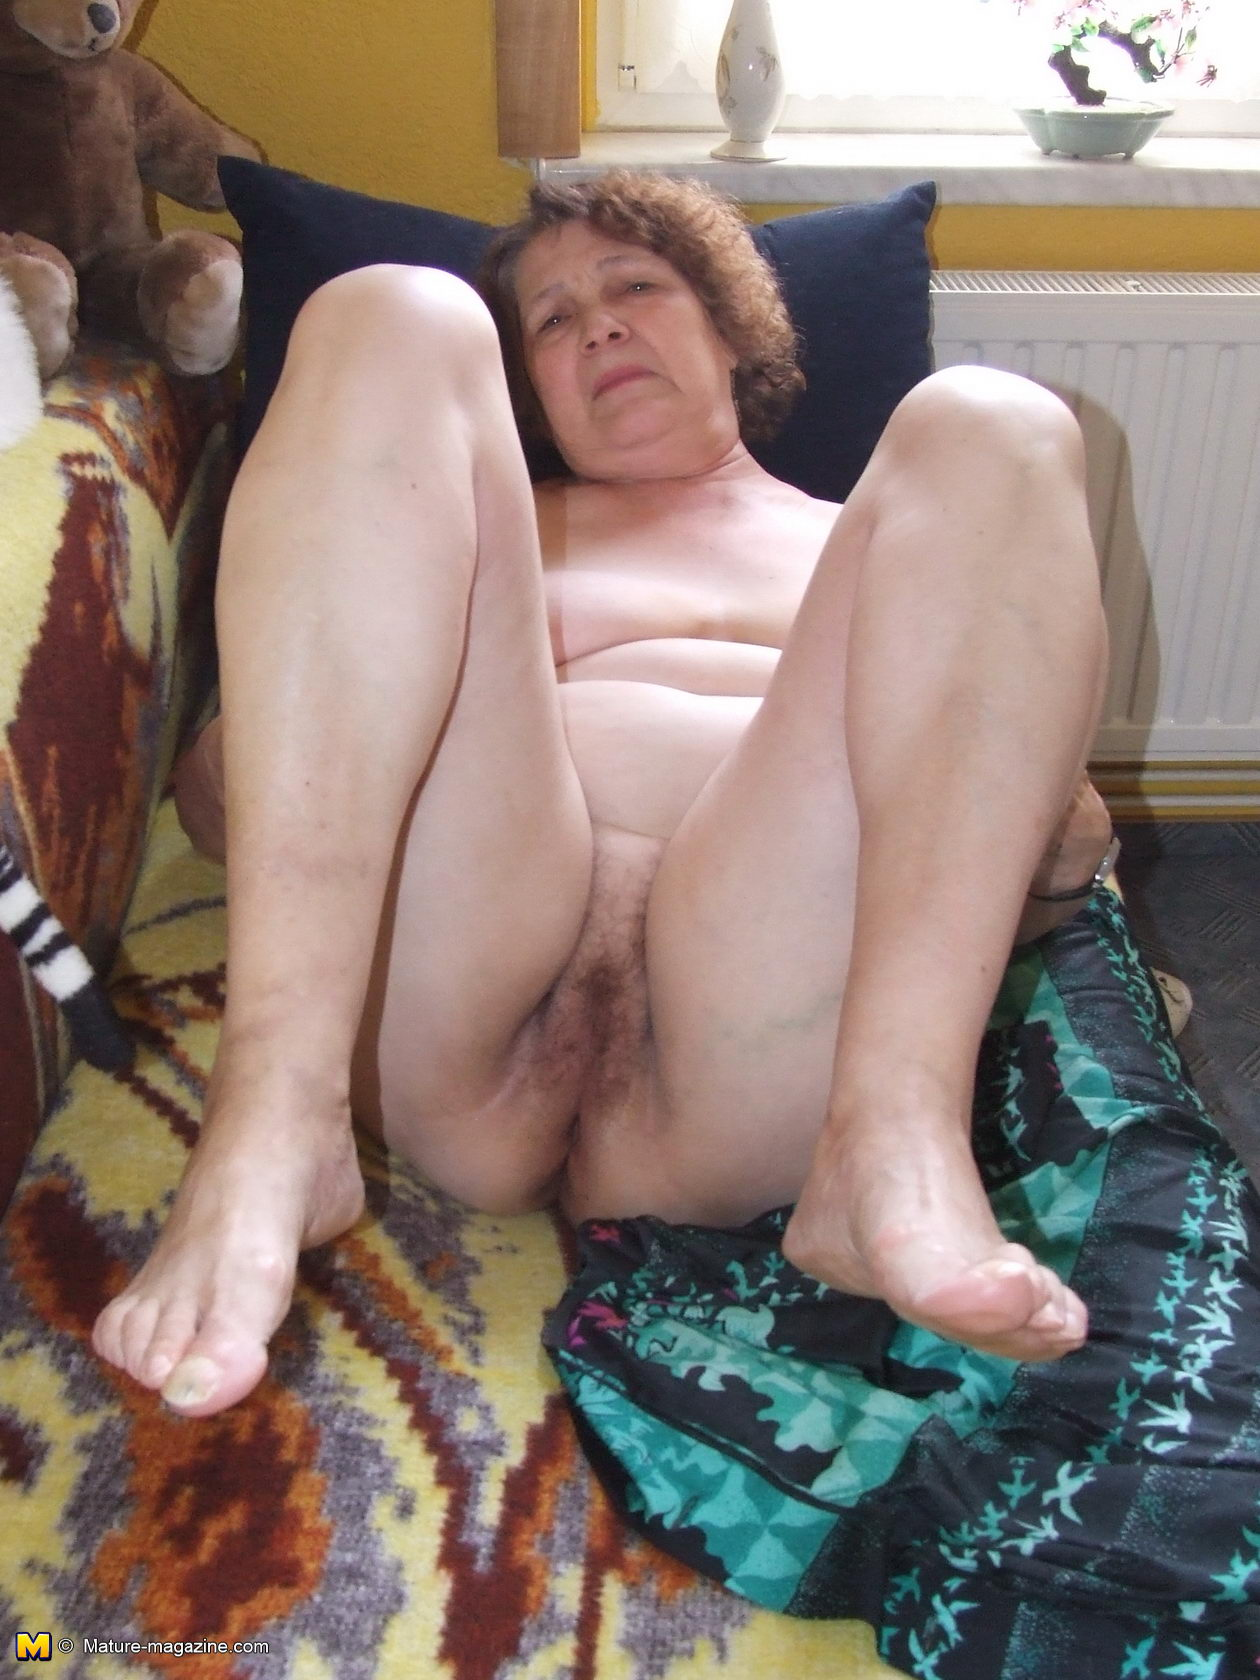 Hot fuck 72 fat ass granny wanted to ride the swedish bwc